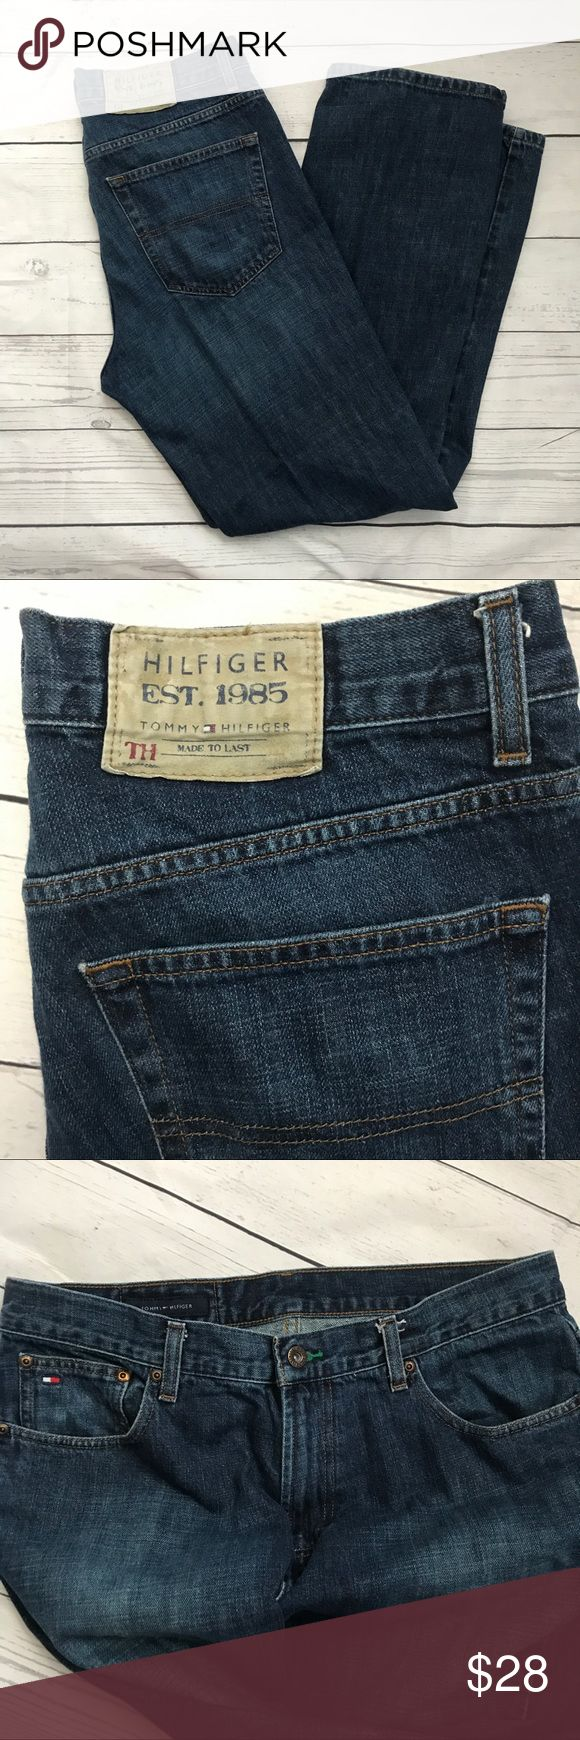 Tommy Hilfiger Freedom Jeans Tommy Hilfiger Freedom Jeans, men's jeans size 33/32.  Vintage jeans in great condition! No rips or sign of wear on the hems. Dark wash jeans  Offers welcome no trades. Tommy Hilfiger Jeans